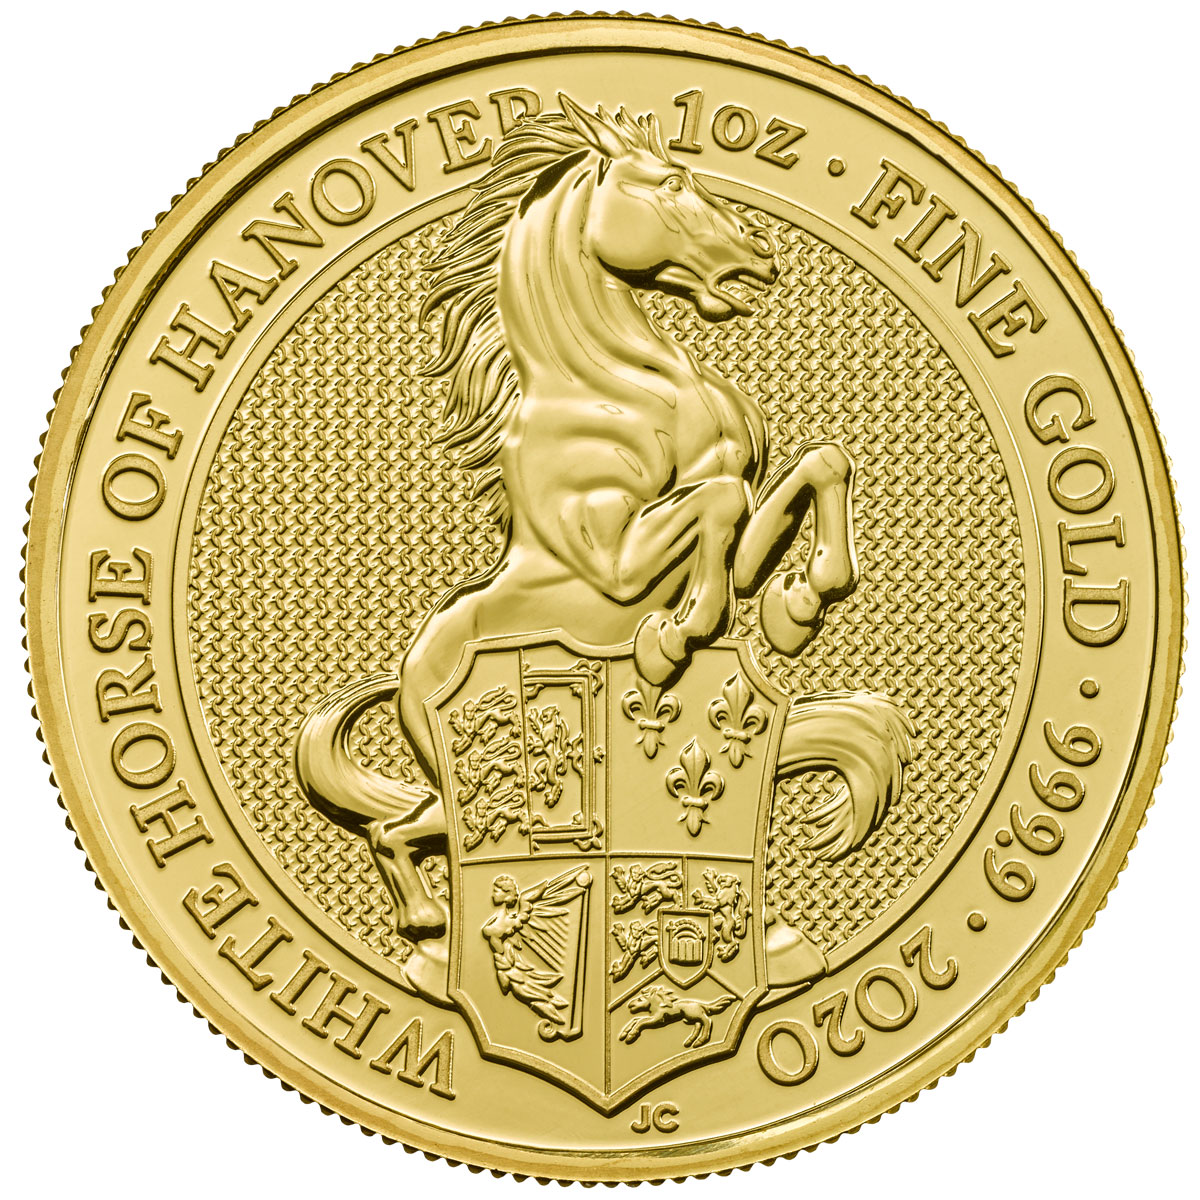 2020 Great Britain 1 oz Gold Queen's Beasts White Horse of Hanover £100 Coin GEM BU